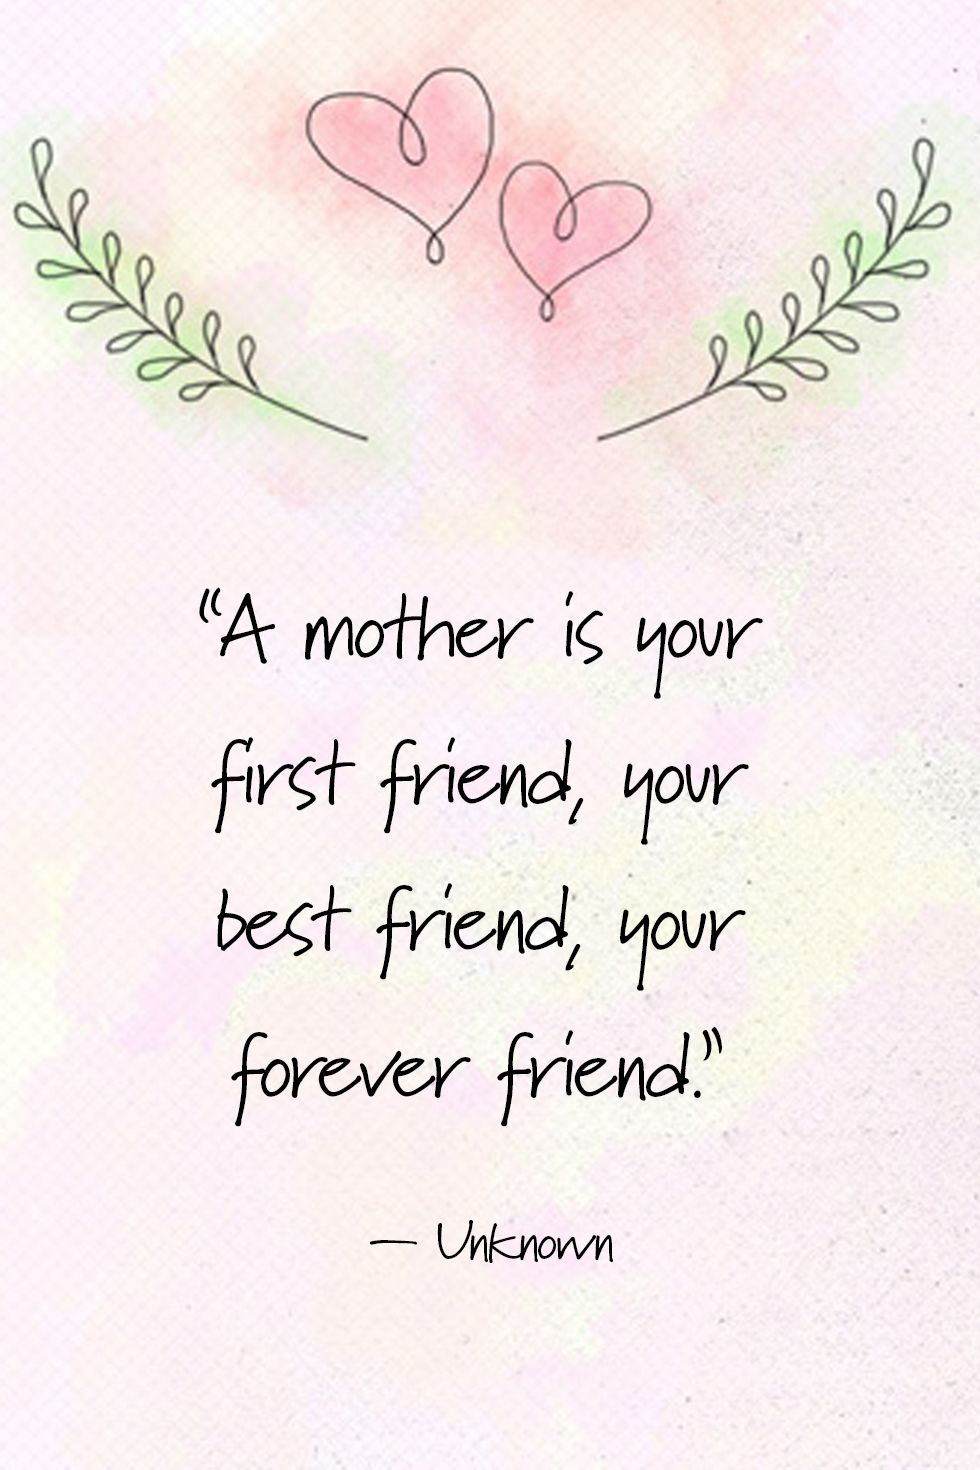 Mothers day quotes best friend eetcafebergkwartier mothers day quotes best friend kristyandbryce Images